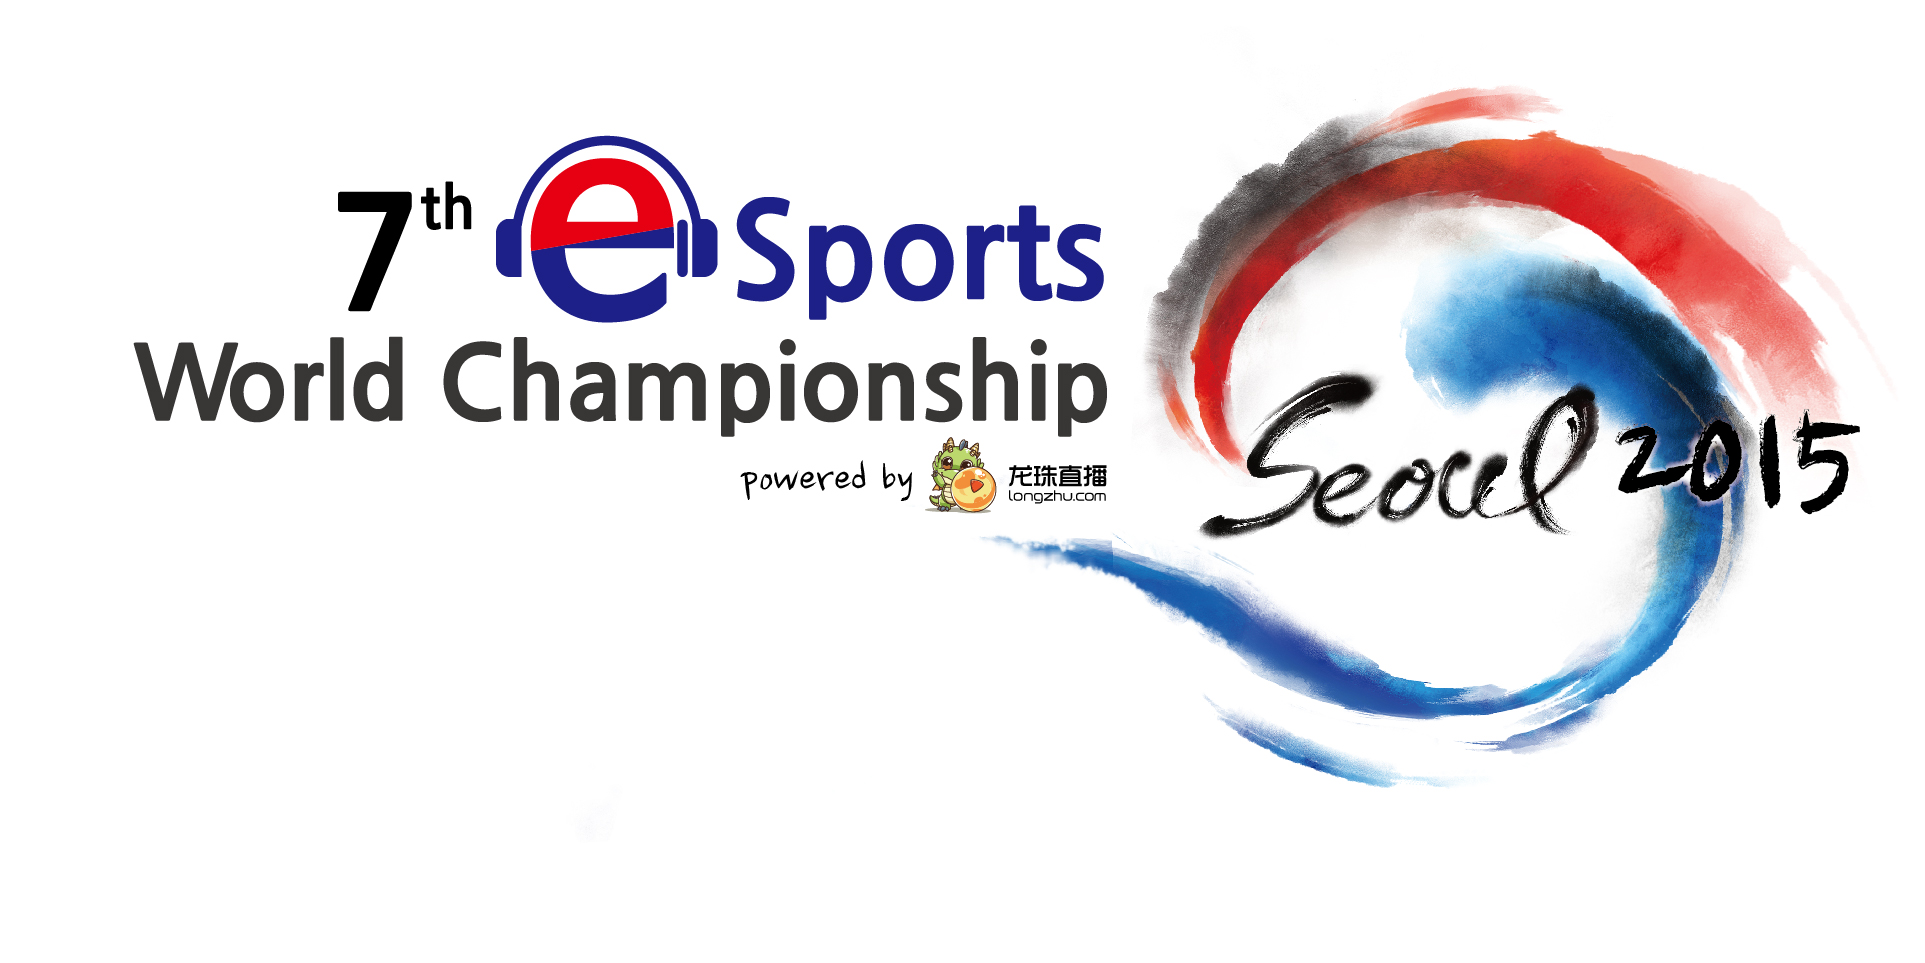 2040678419_ytZfL7F3_The_Official_Logo_of_the_7th_e-Sports_WC_-_01